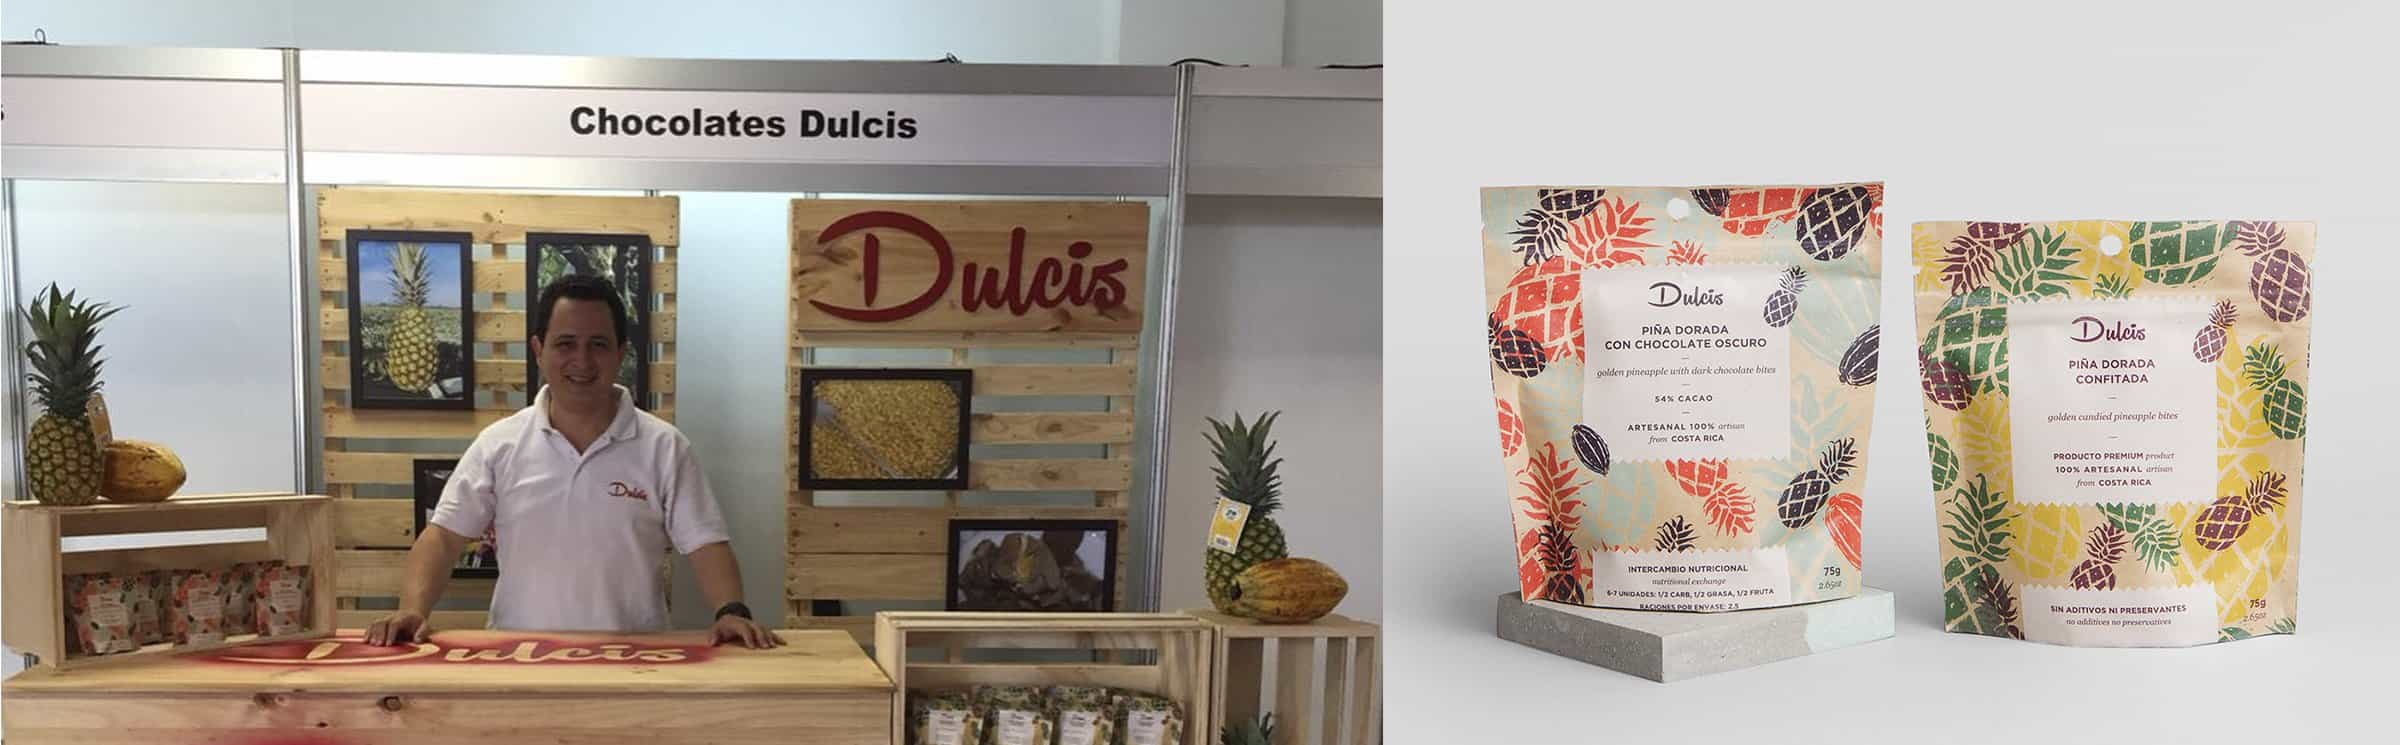 Dulcis Costa Rica Food and Beverages Packages-kits